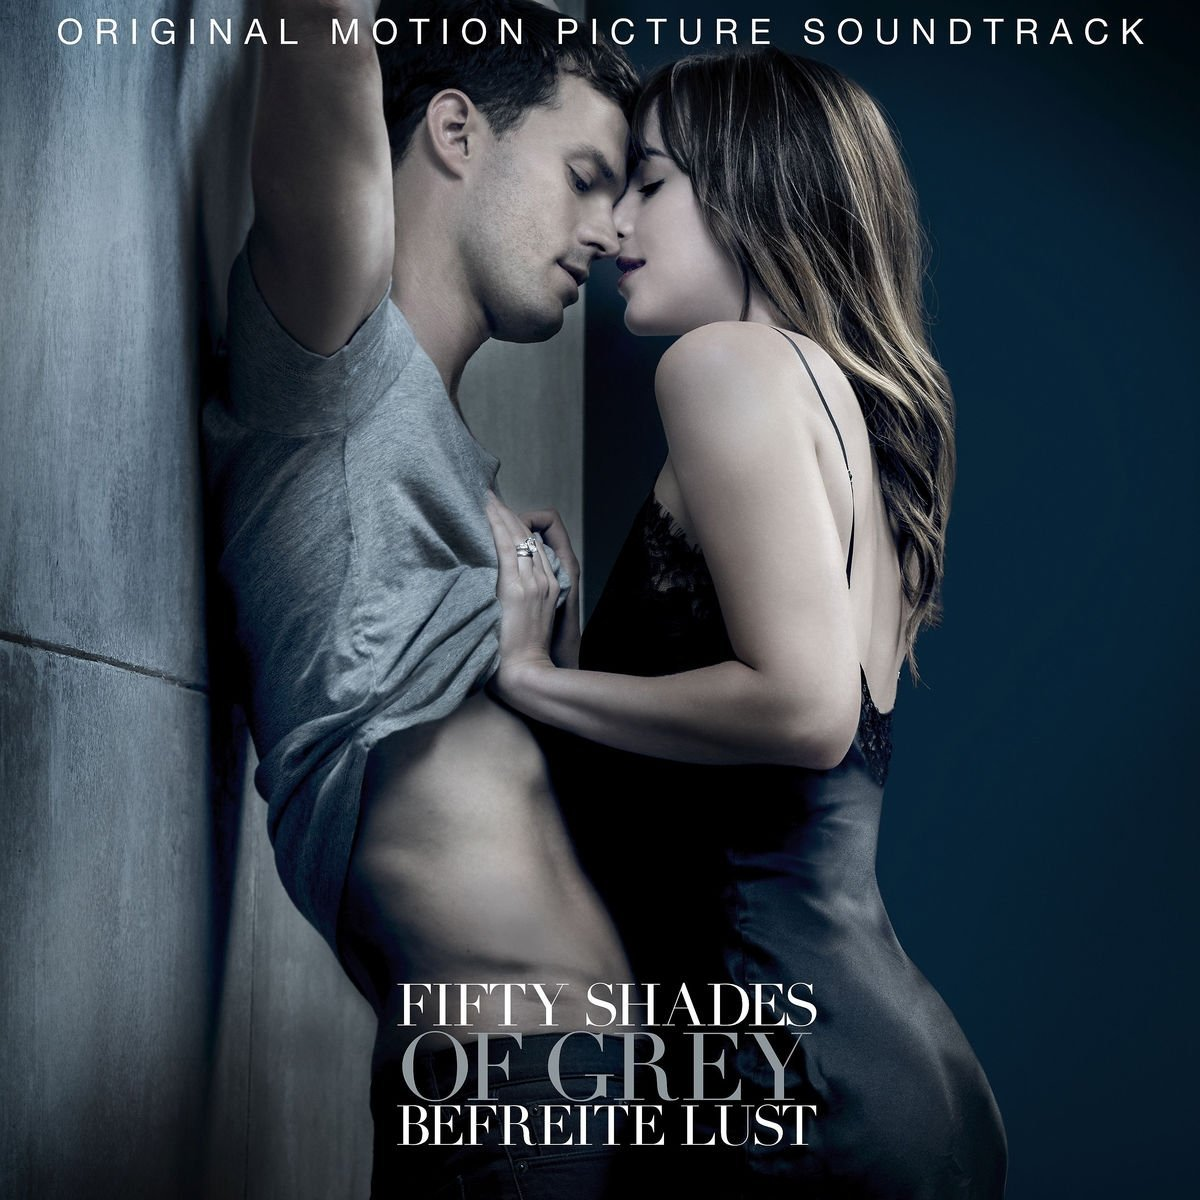 Fifty Shades Of Grey 3 Soundtrack